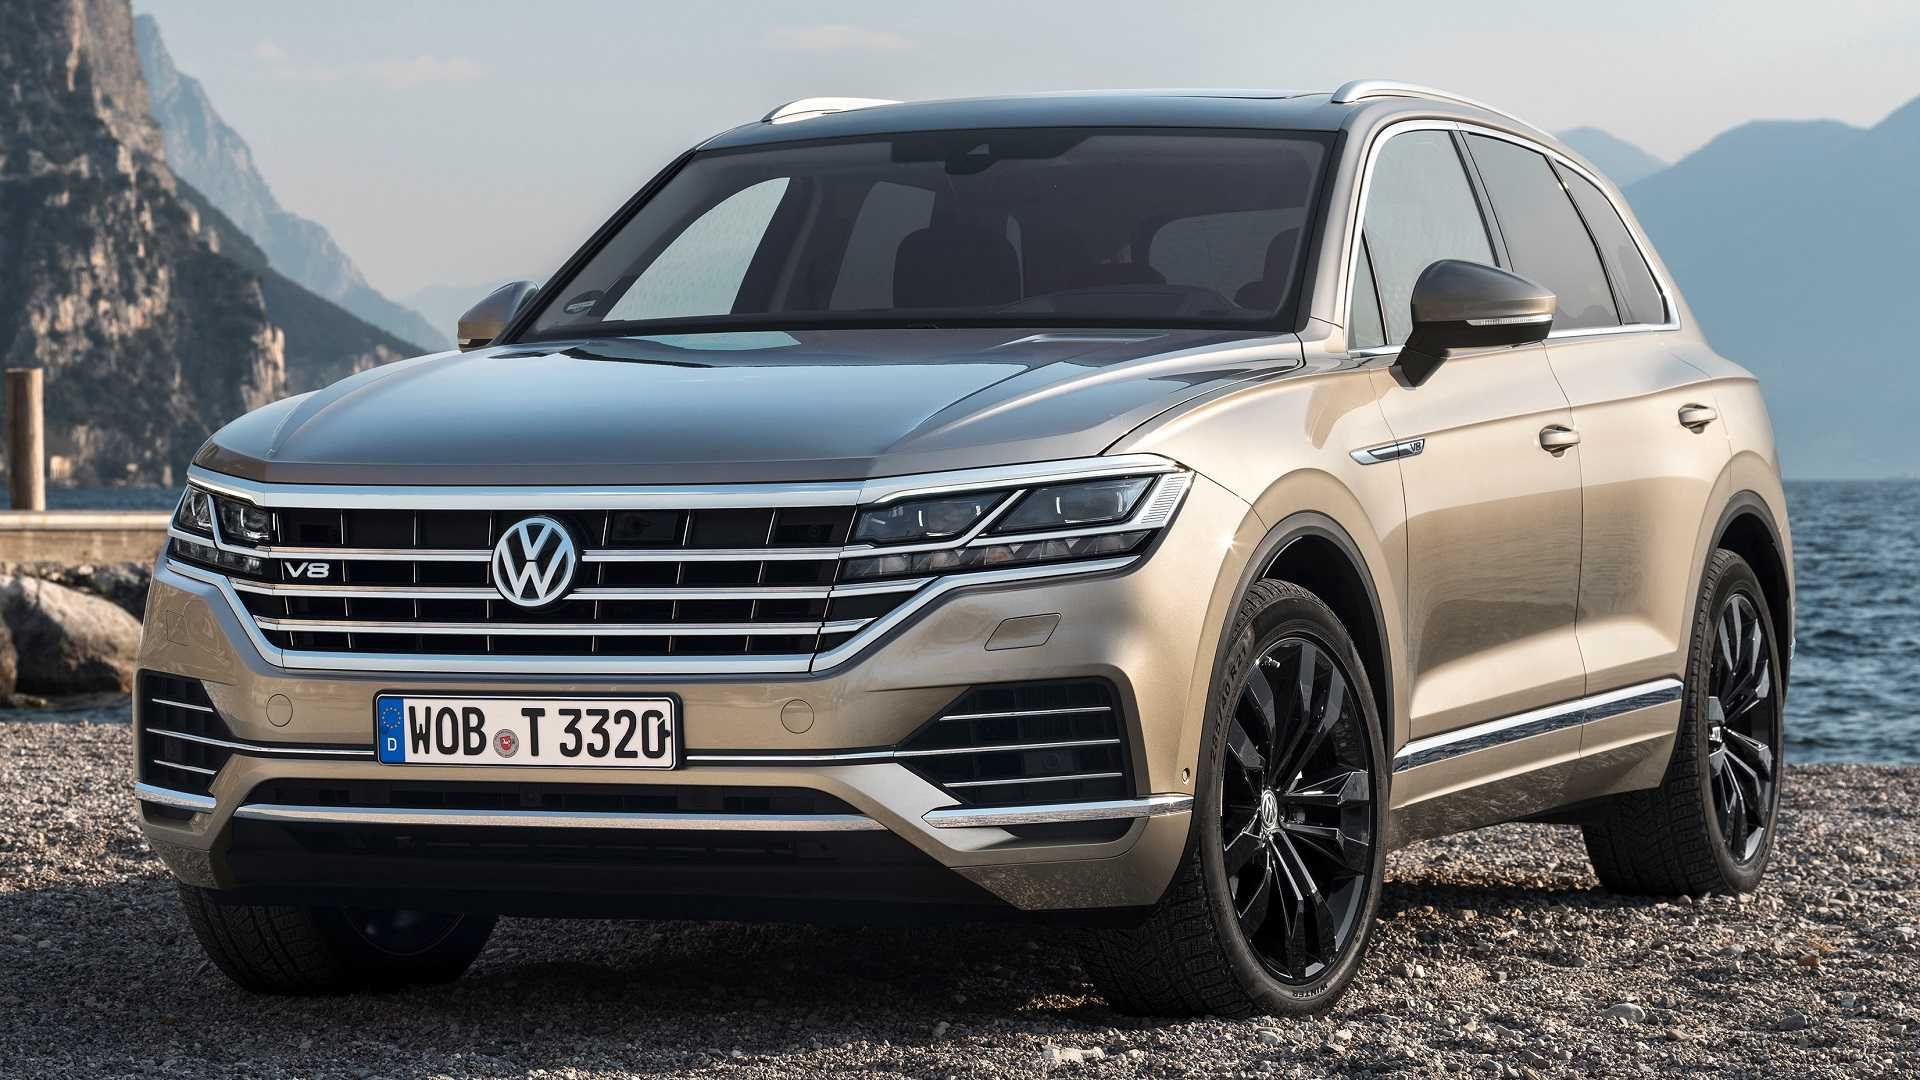 2020 VW Touareg: New Engines, Design, Release >> Touareg Is The Last Volkswagen To Get A V8 Diesel Engine